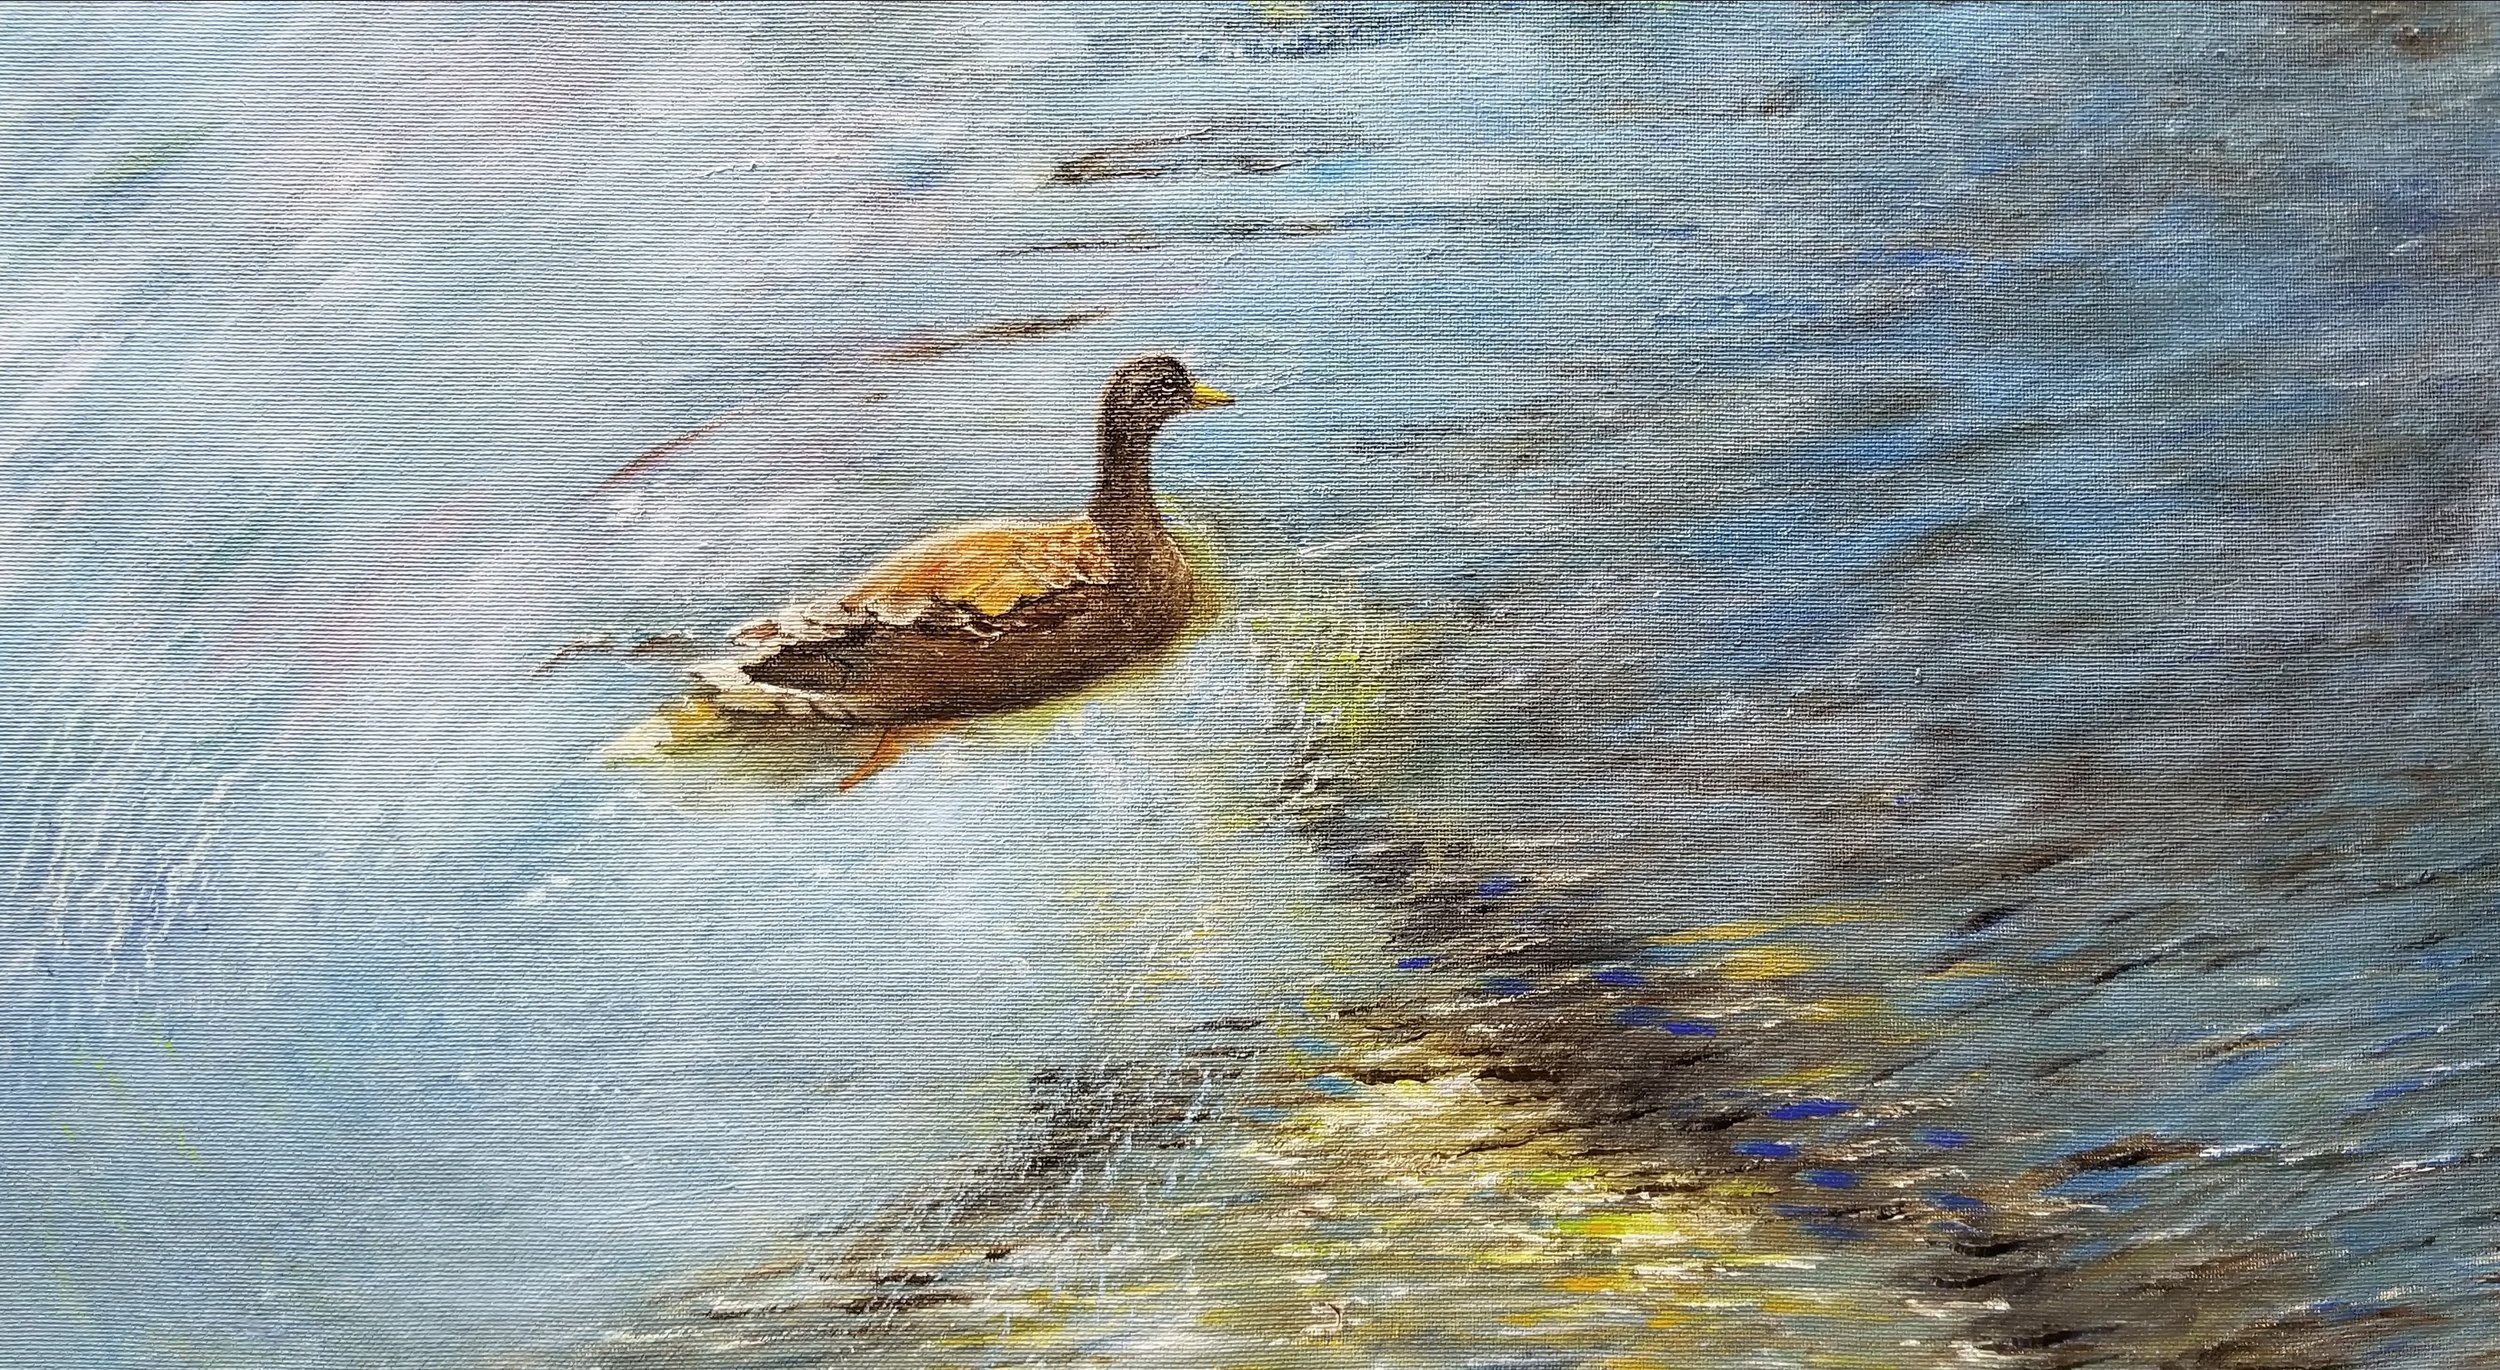 Lackey_Duck+on+a+Pond_Acrylic+18+X+24.jpg